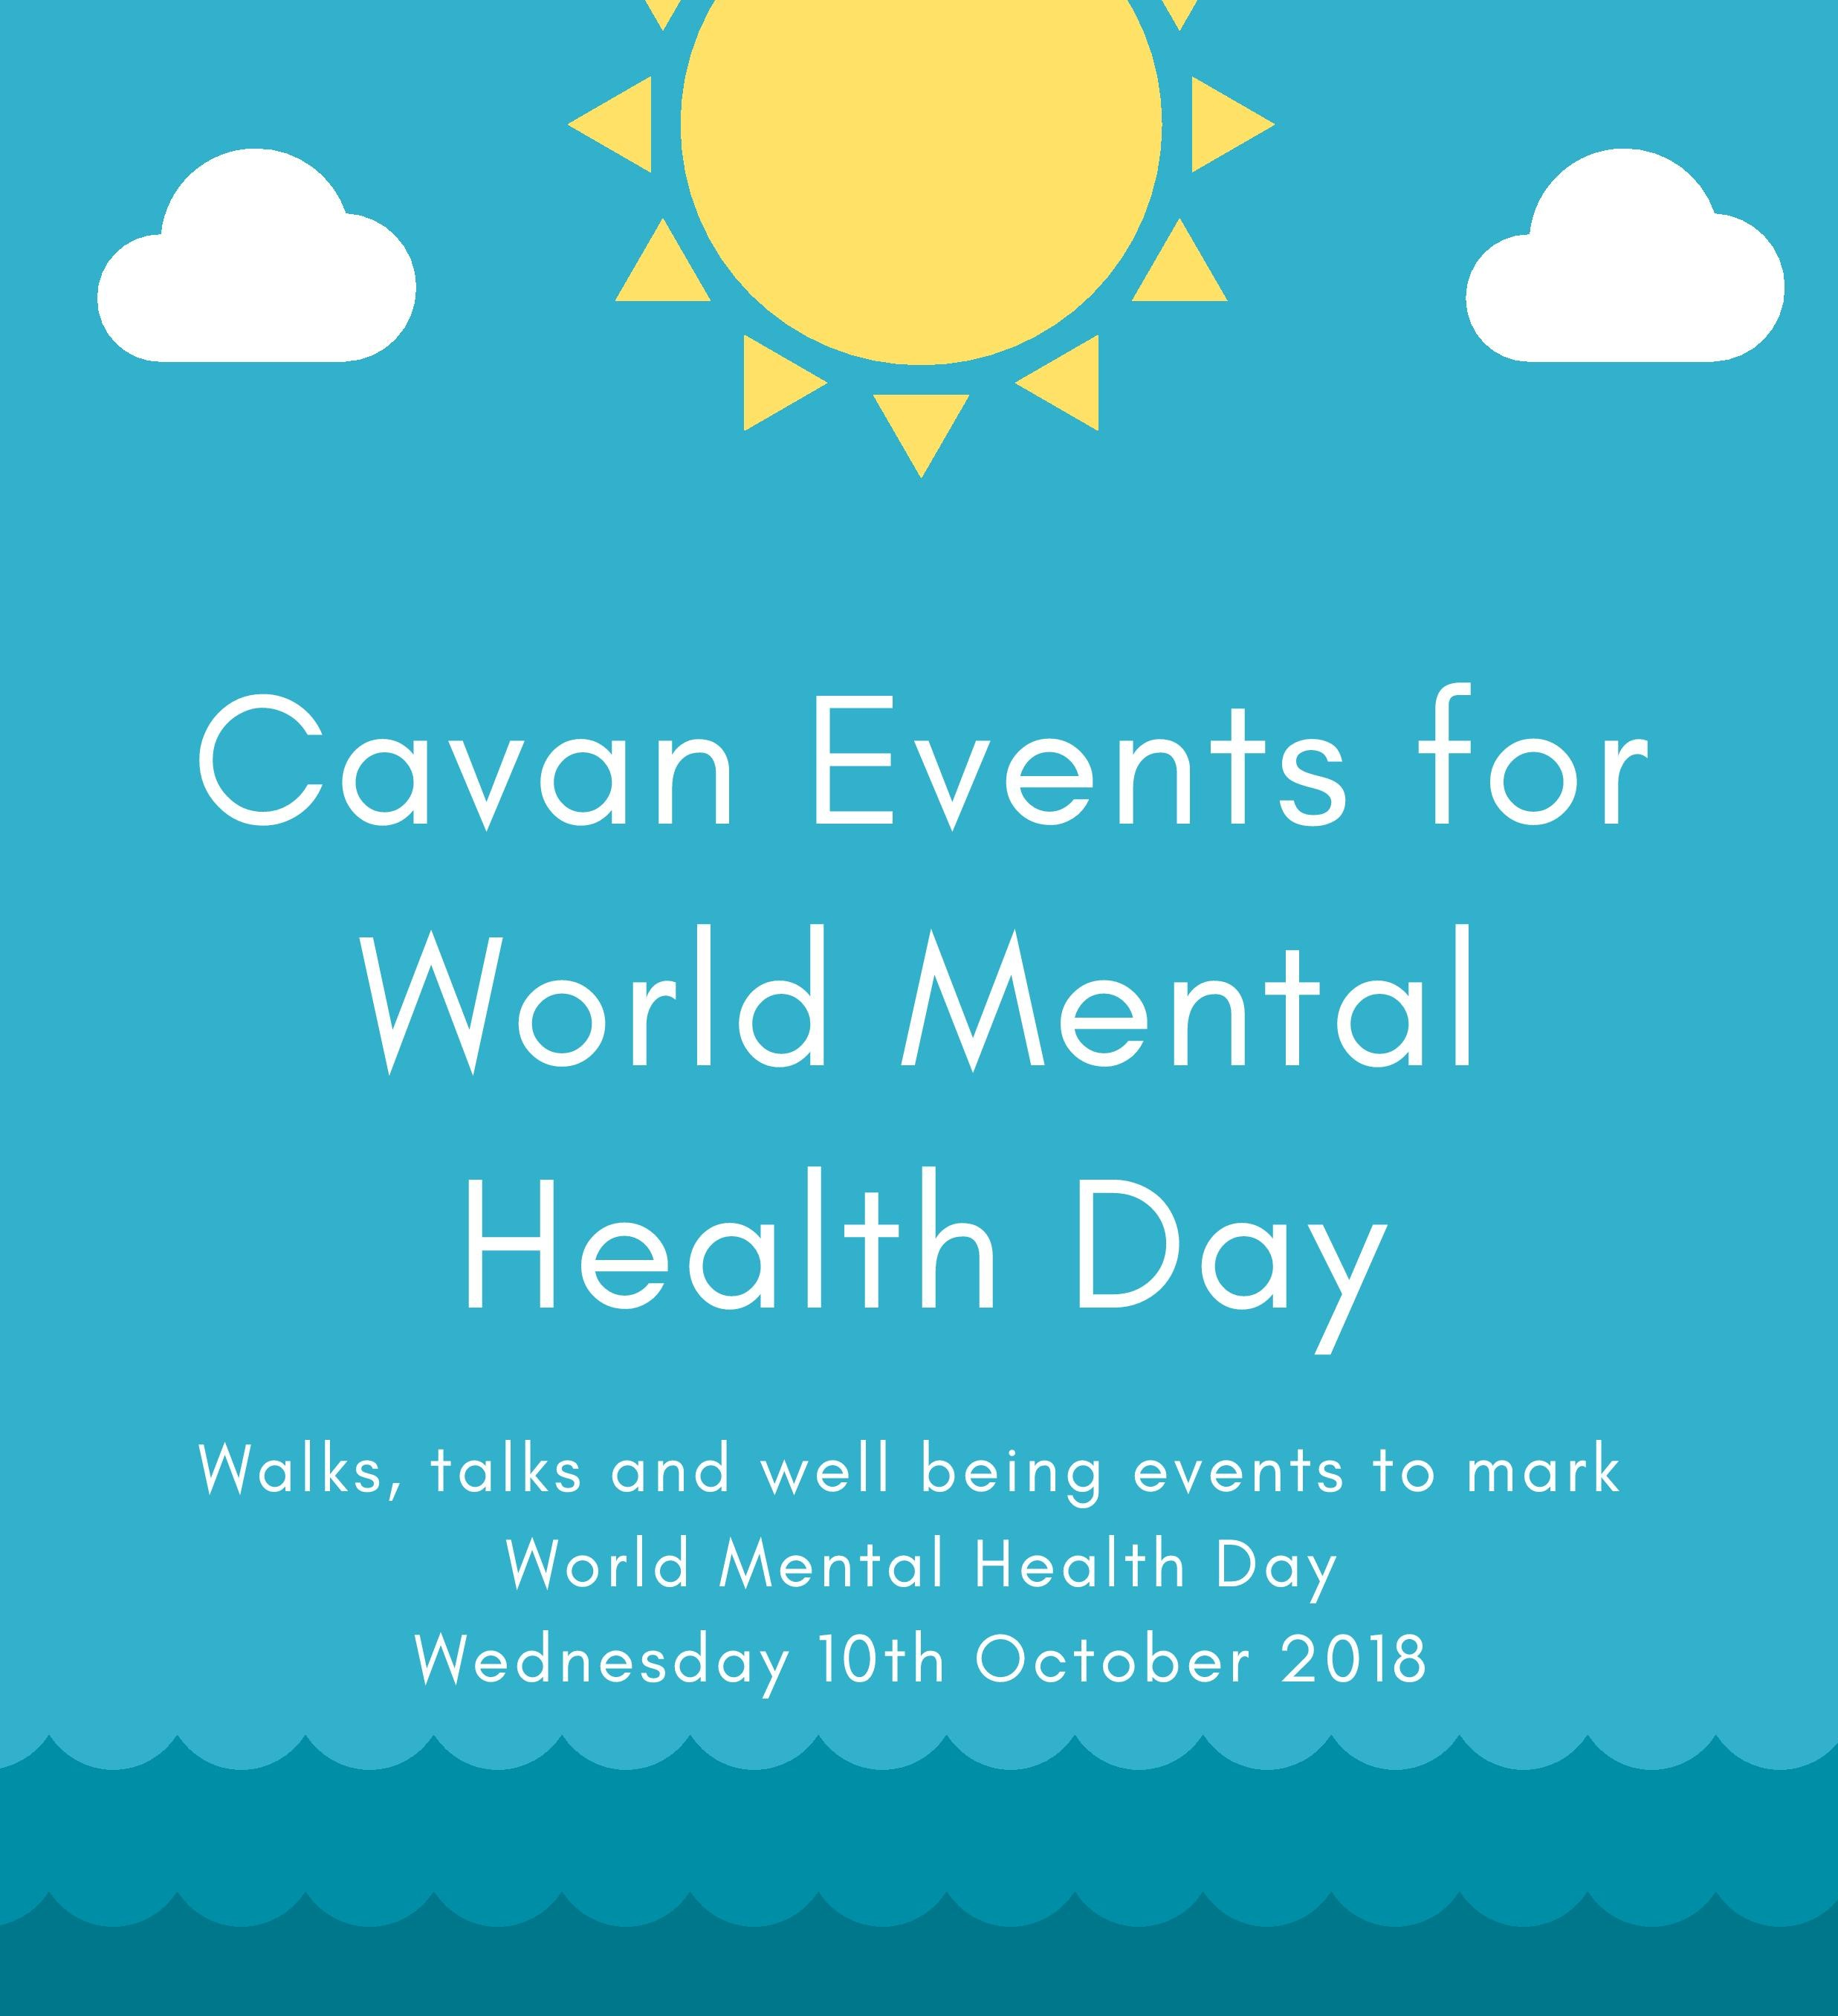 World Mental Health Day - 10th October; events scheduled ...